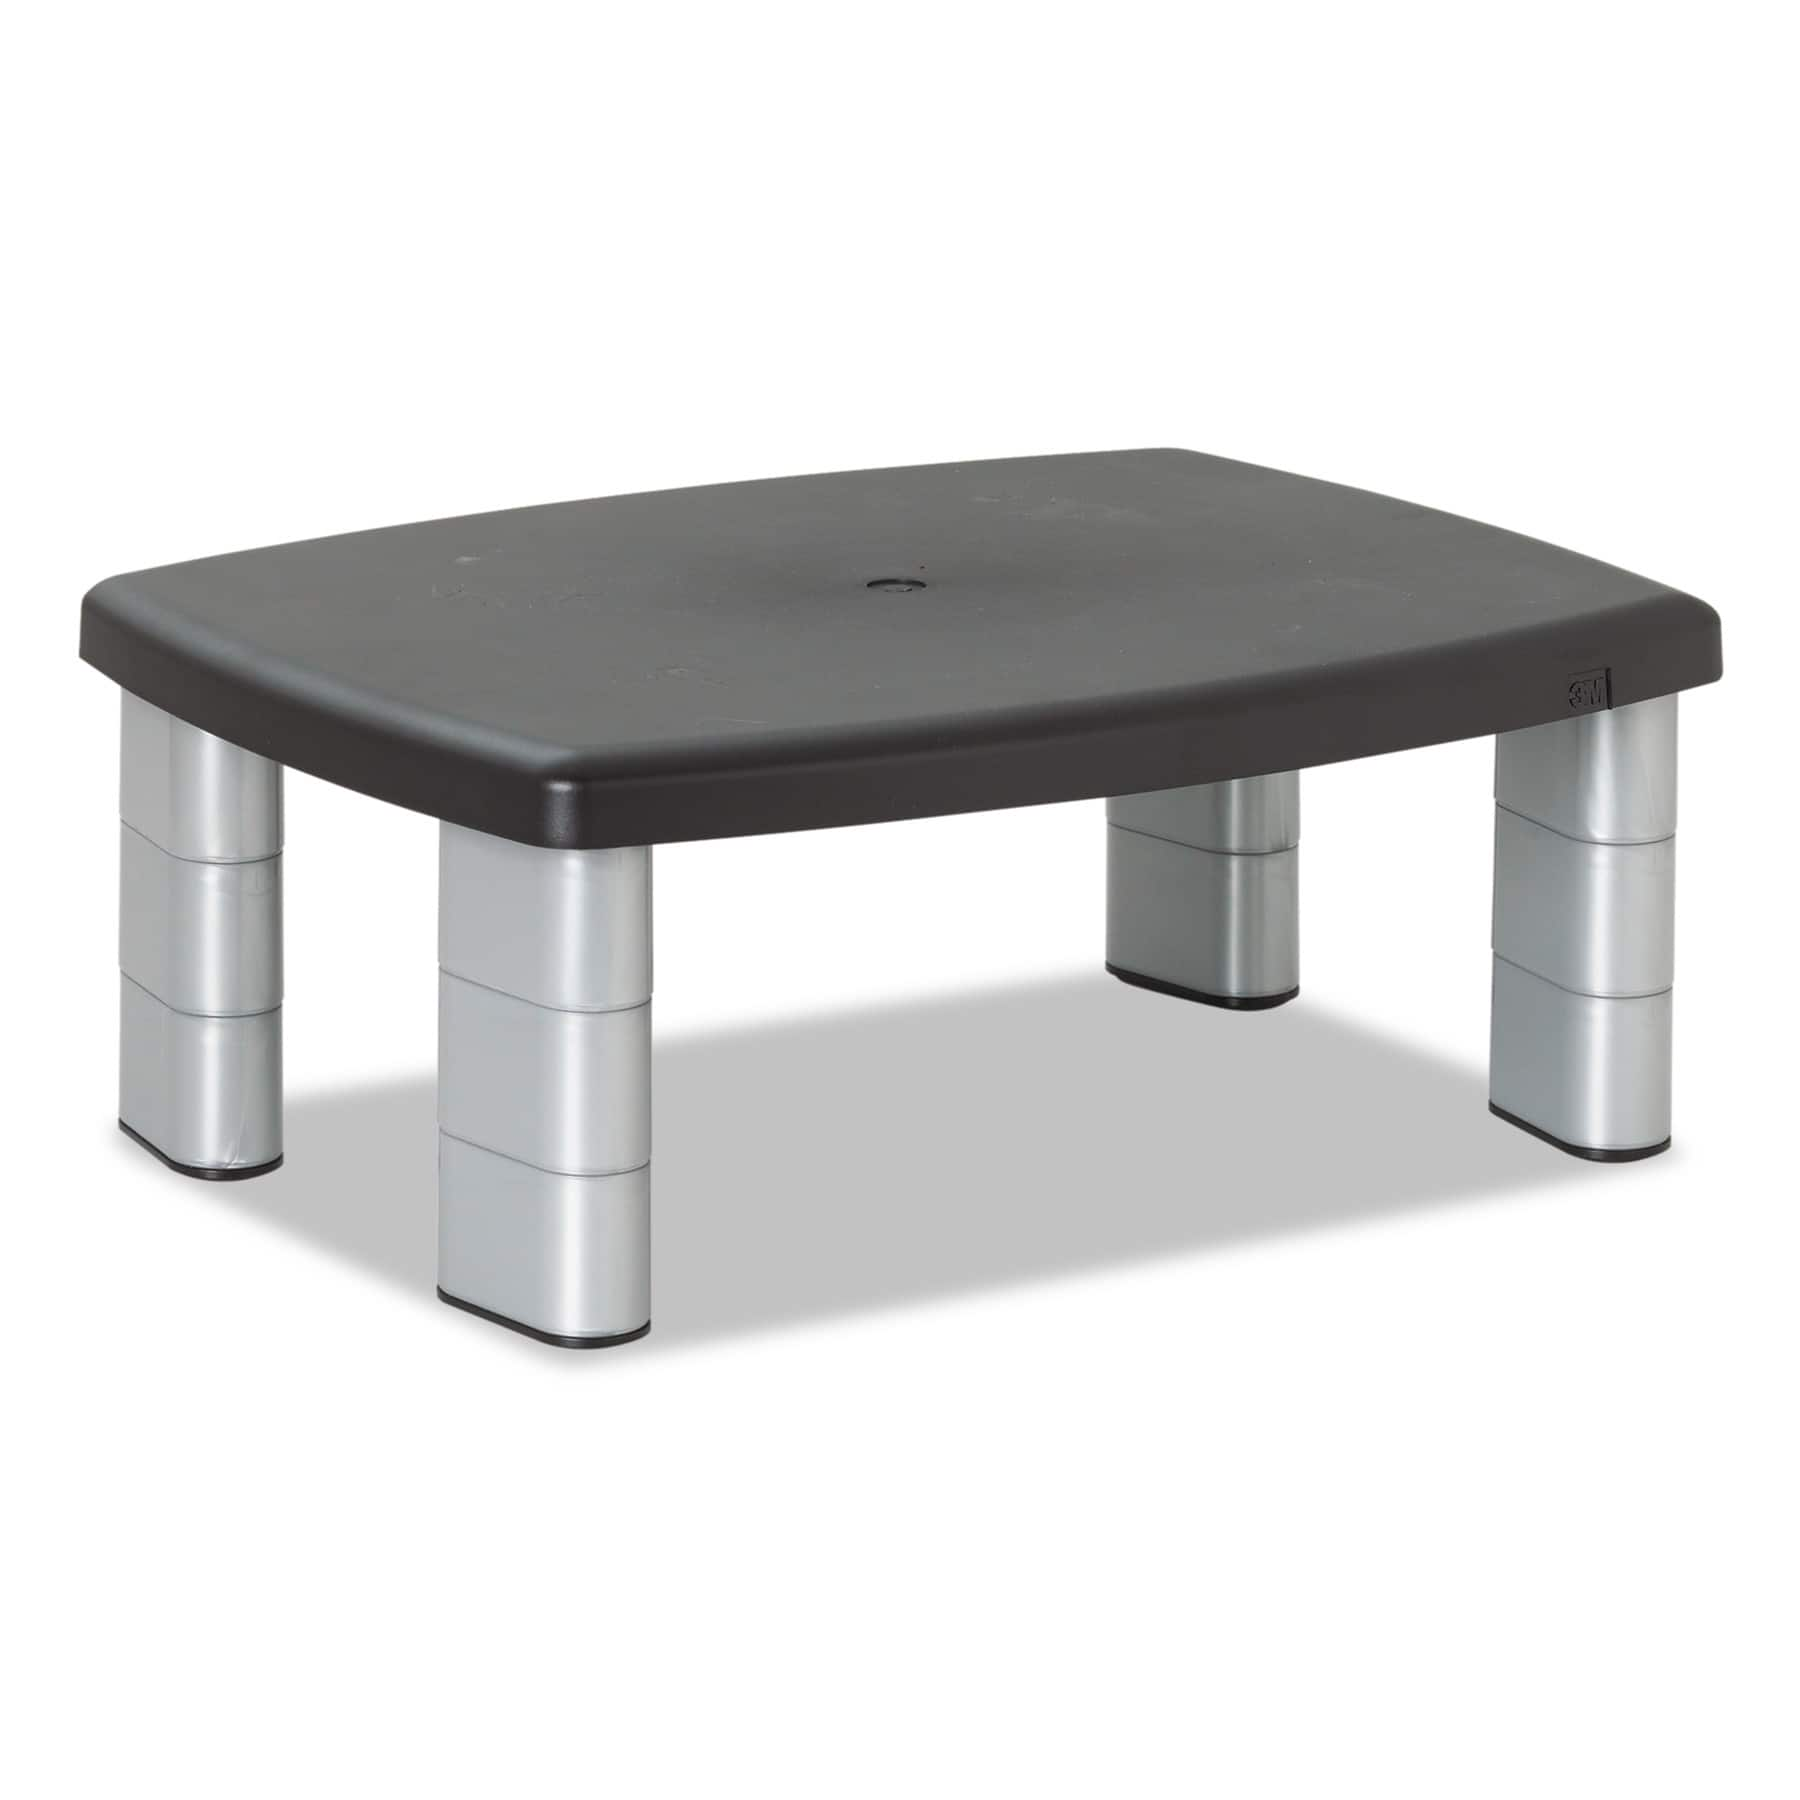 3M Adjustable Height Monitor Stand, 15 x 12 x 2 5/8 to 5 7/8, Black/Silver $20.7 FS w/ Prime @Amazon